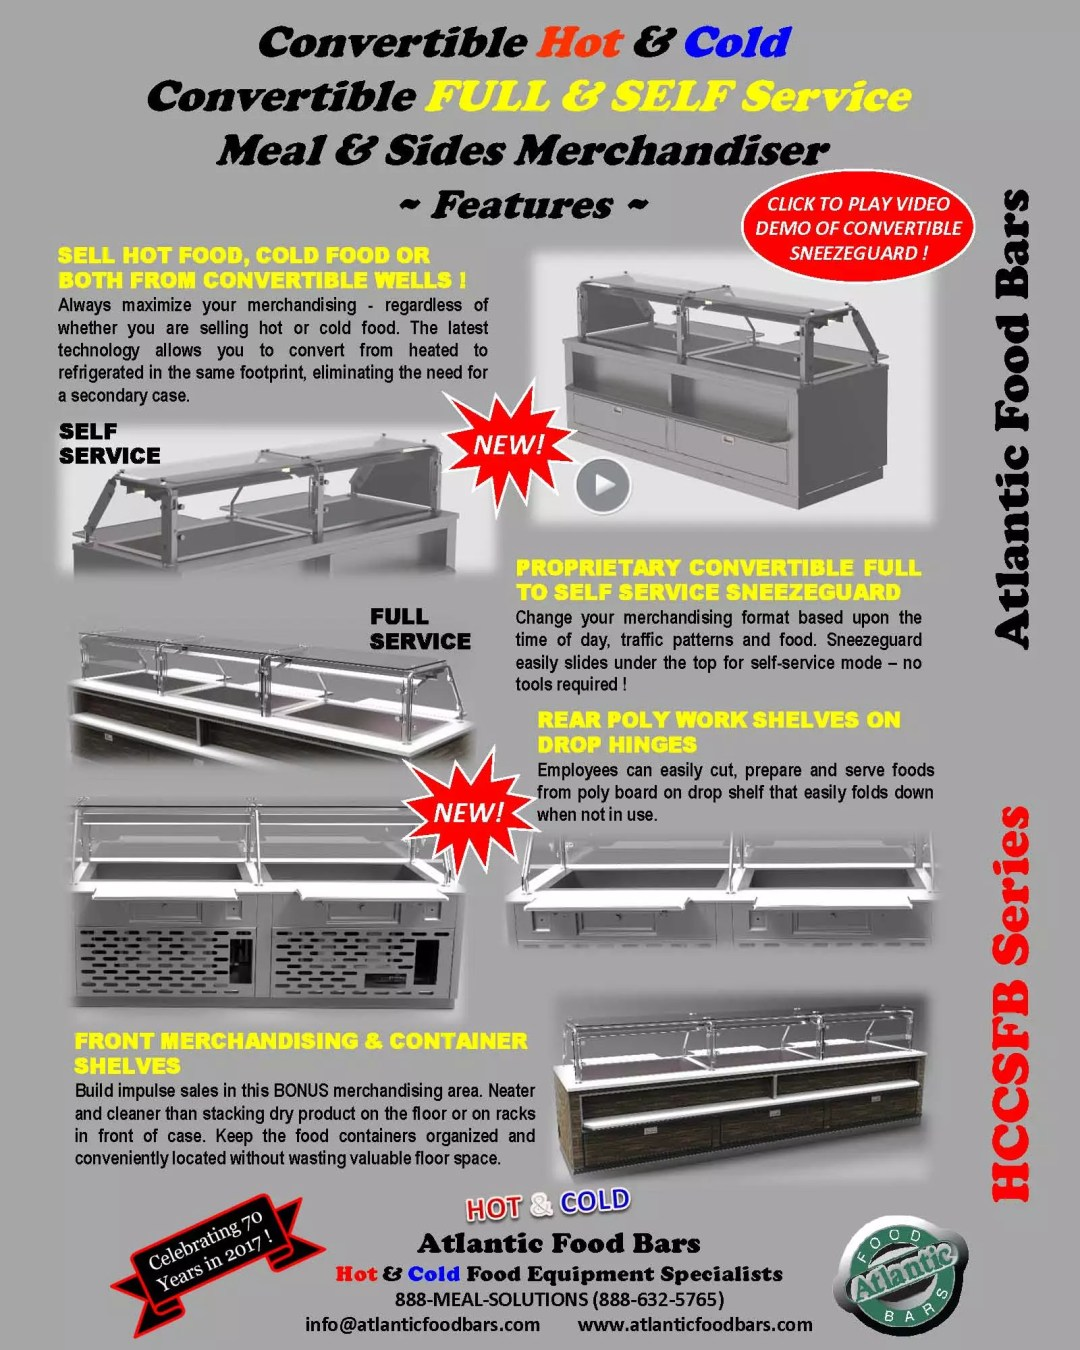 Atlantic Food Bars - Convertible Sneezeguard Designs with video and animation_Page_1